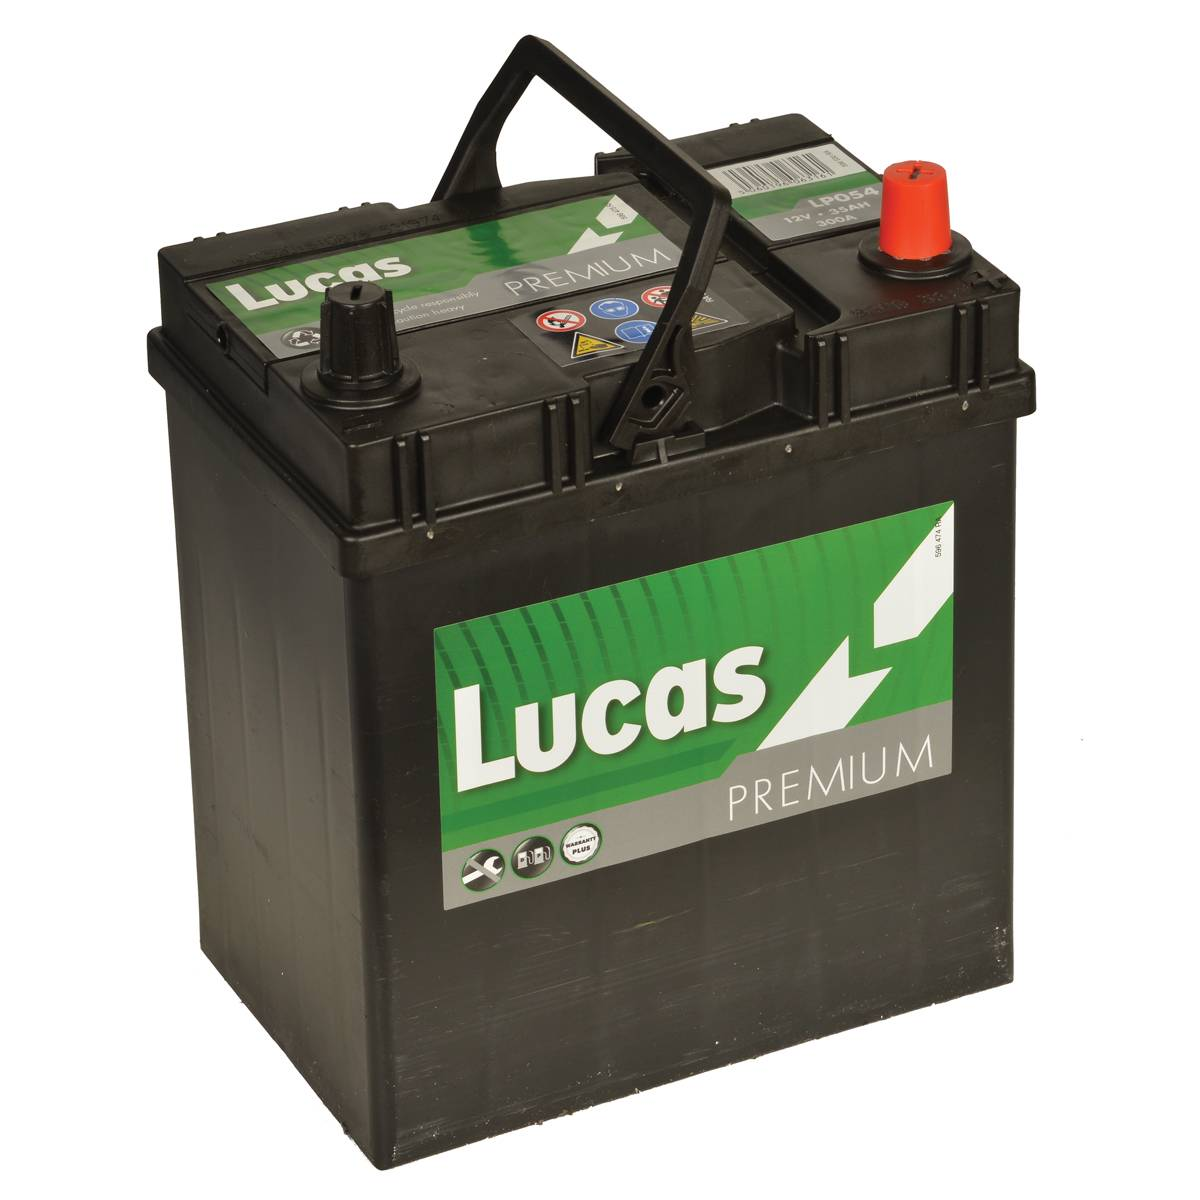 Lucas Premium LP054 Car Battery